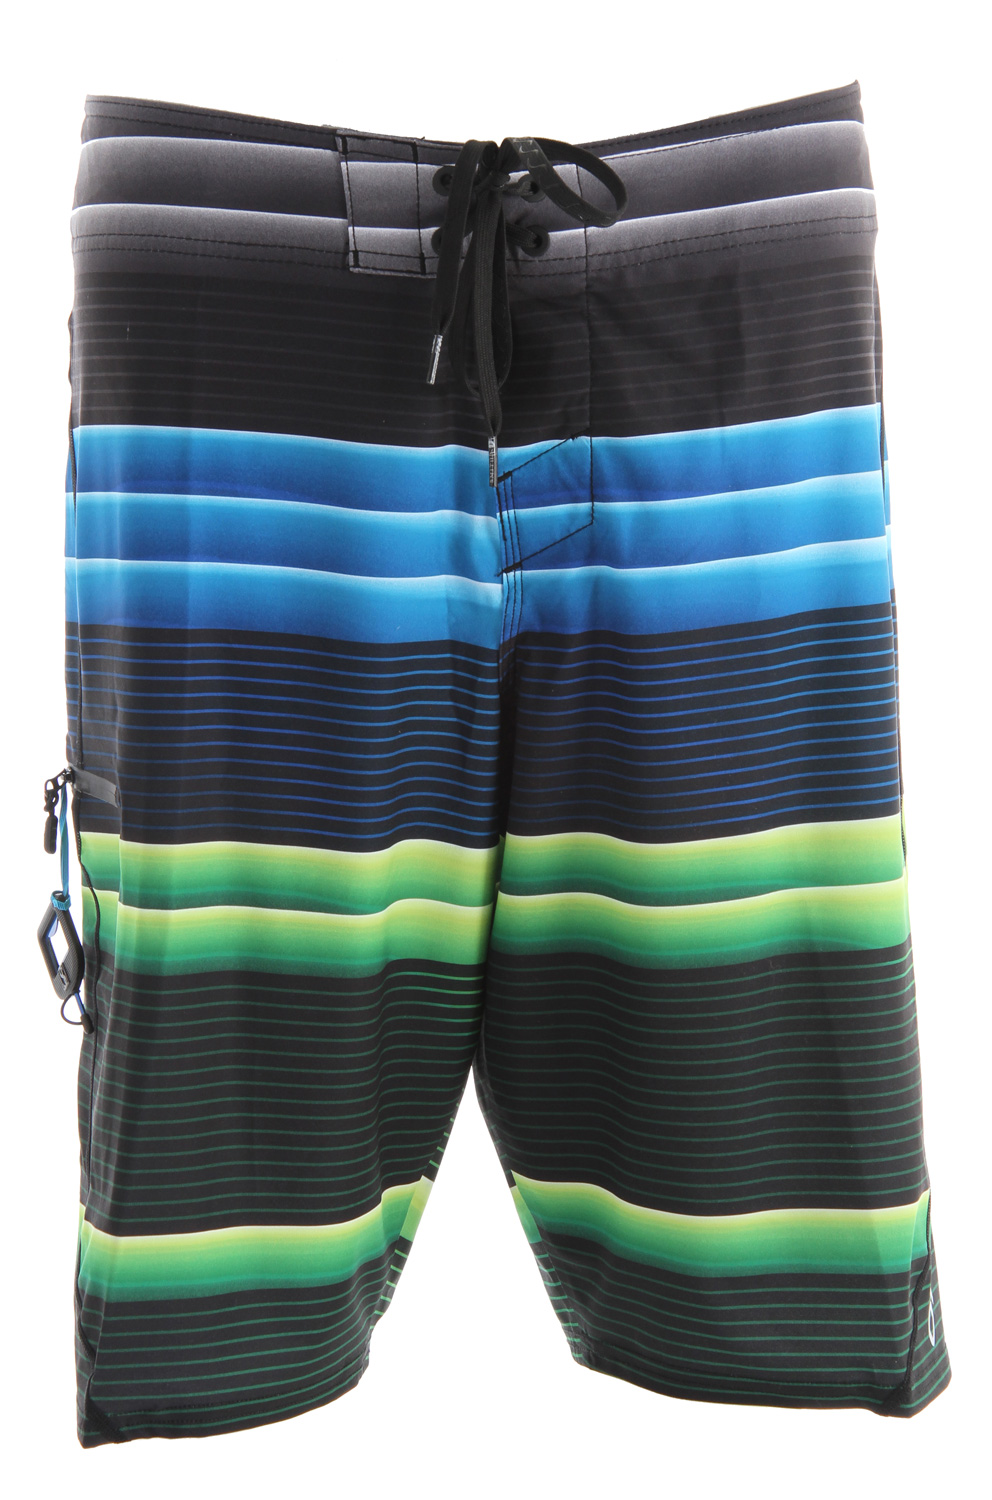 "Surf Key Features of the O'Neill Jordy Freak Boardshorts: New and improved hyperfreak stretch 21"" outseam Engineered print boardshort Suply fly 2.0 closure Locking drawcord Welded pocket and hem Screened logos - $49.95"